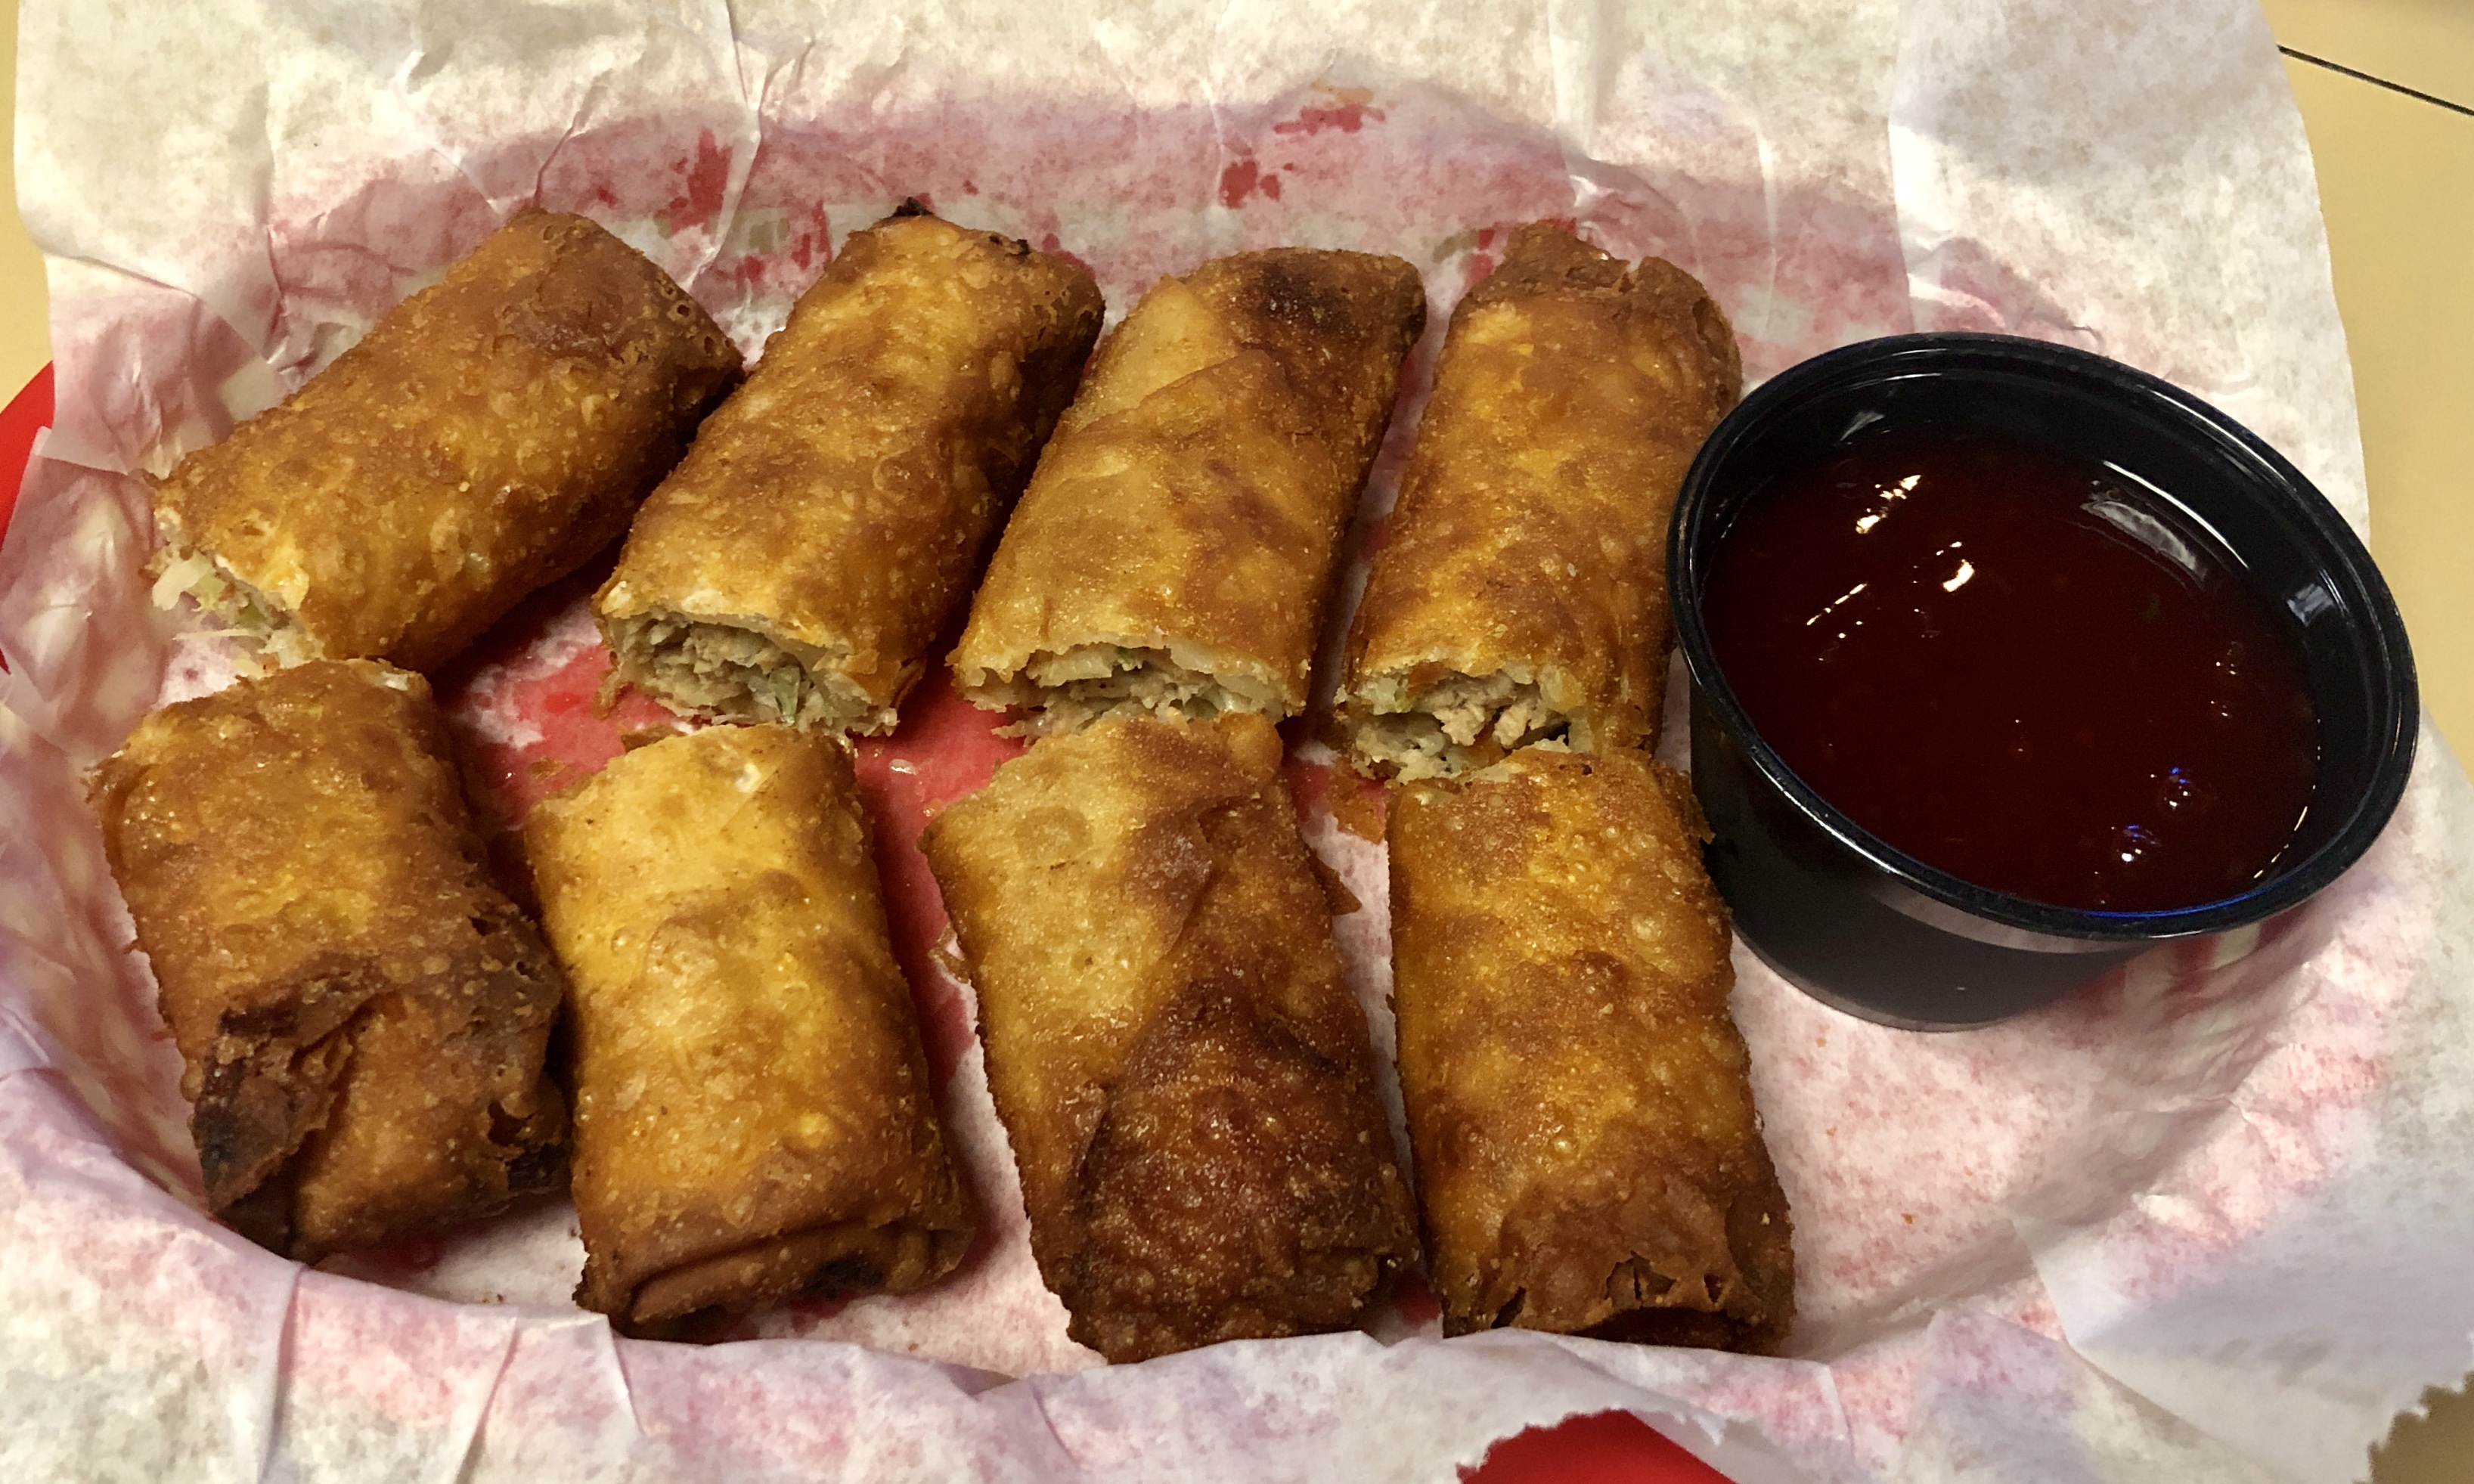 Image of the Egg Rolls at Shakopee Bowl